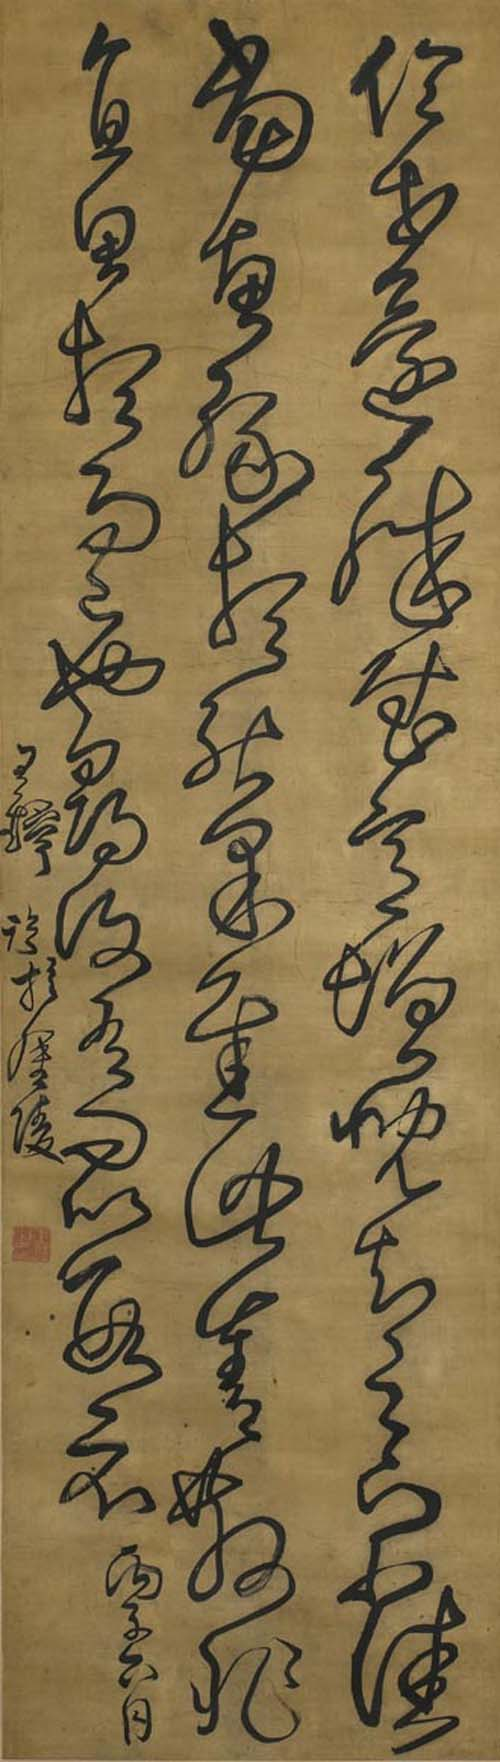 A tall Chinese calligraphy hanging scroll. Ink on silk in ts'ao-shu, 